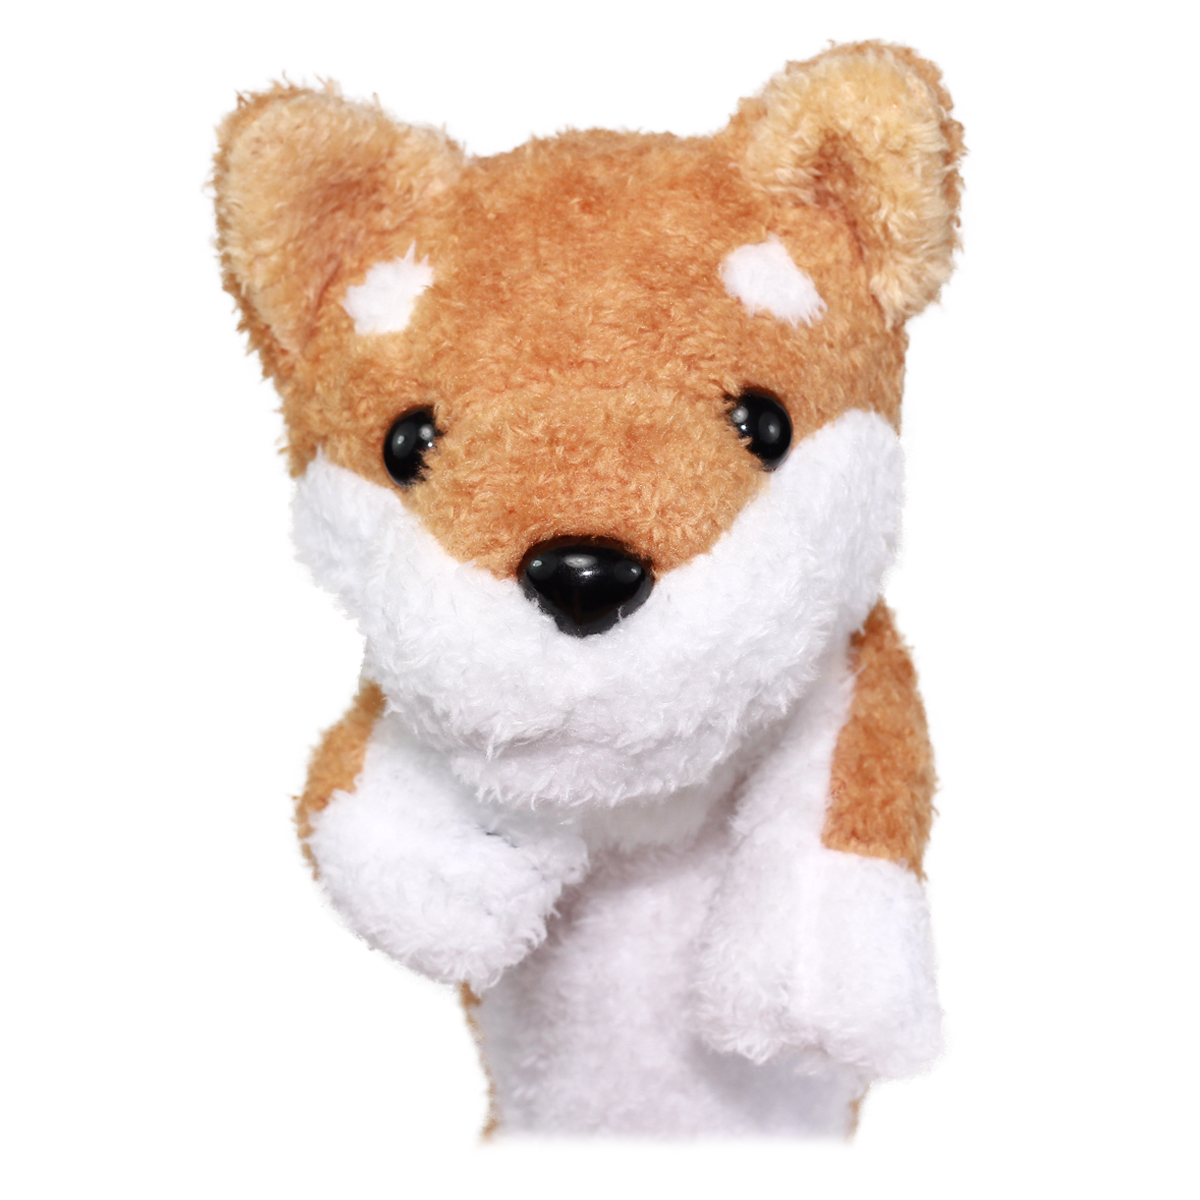 Dog Pencil Case Pouch Stuffed Animal Back To School Collection Fluffy Brown Welsh Corgi Plush 10 Inches